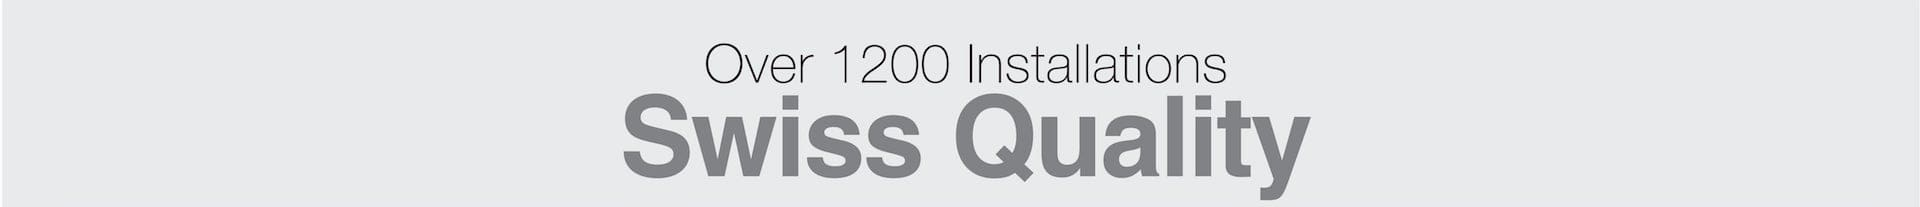 Over 1200 Installations - Swiss Quality